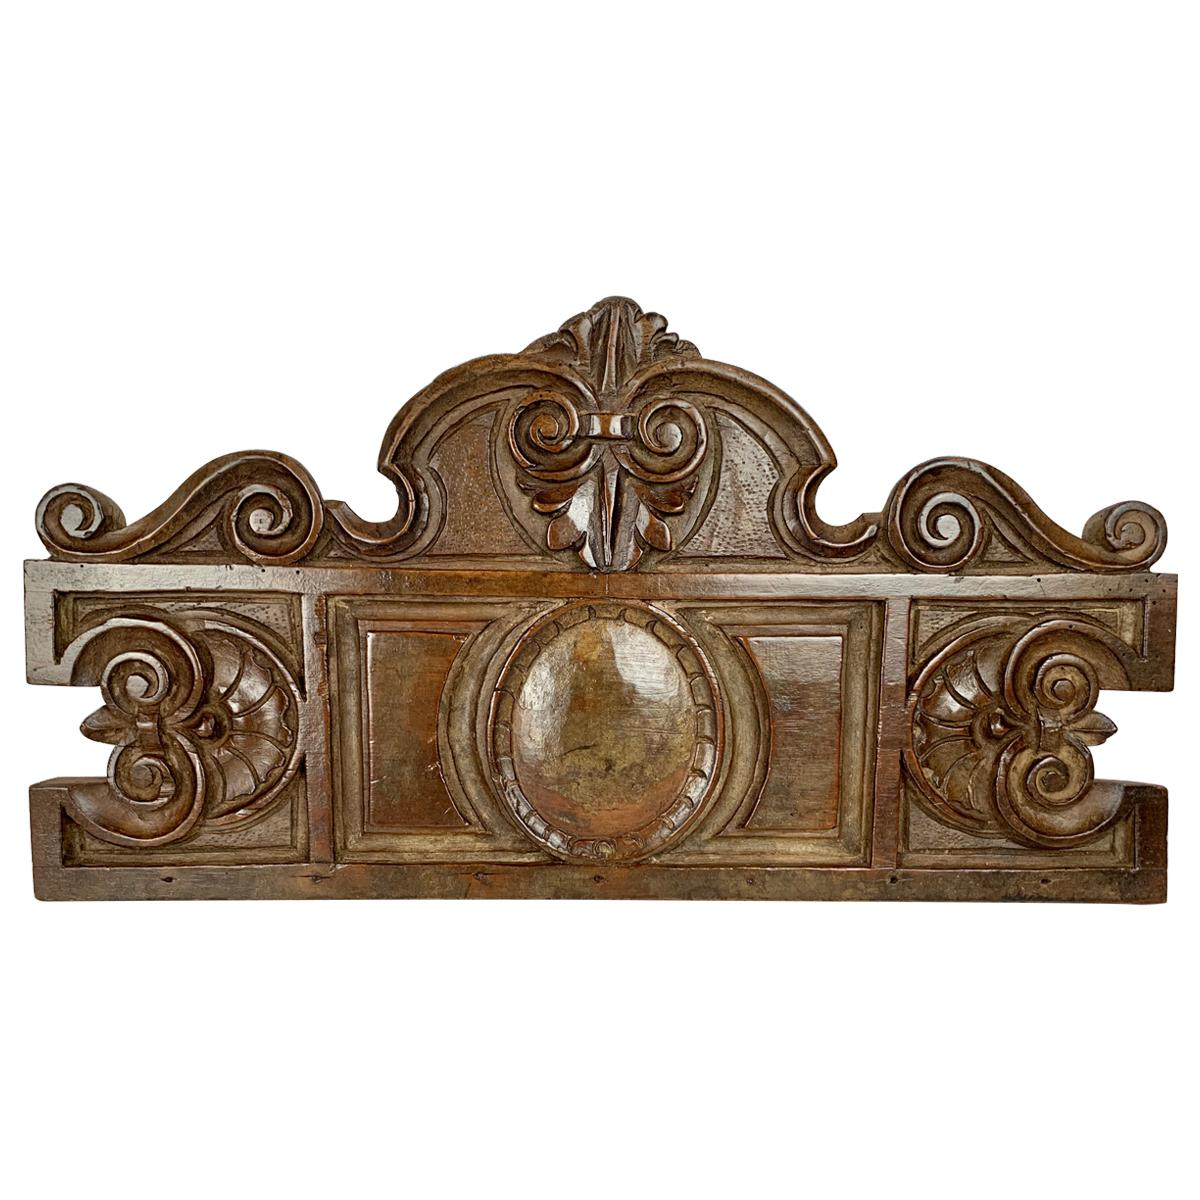 Antique American Hand Carved Walnut Panel, 19th century